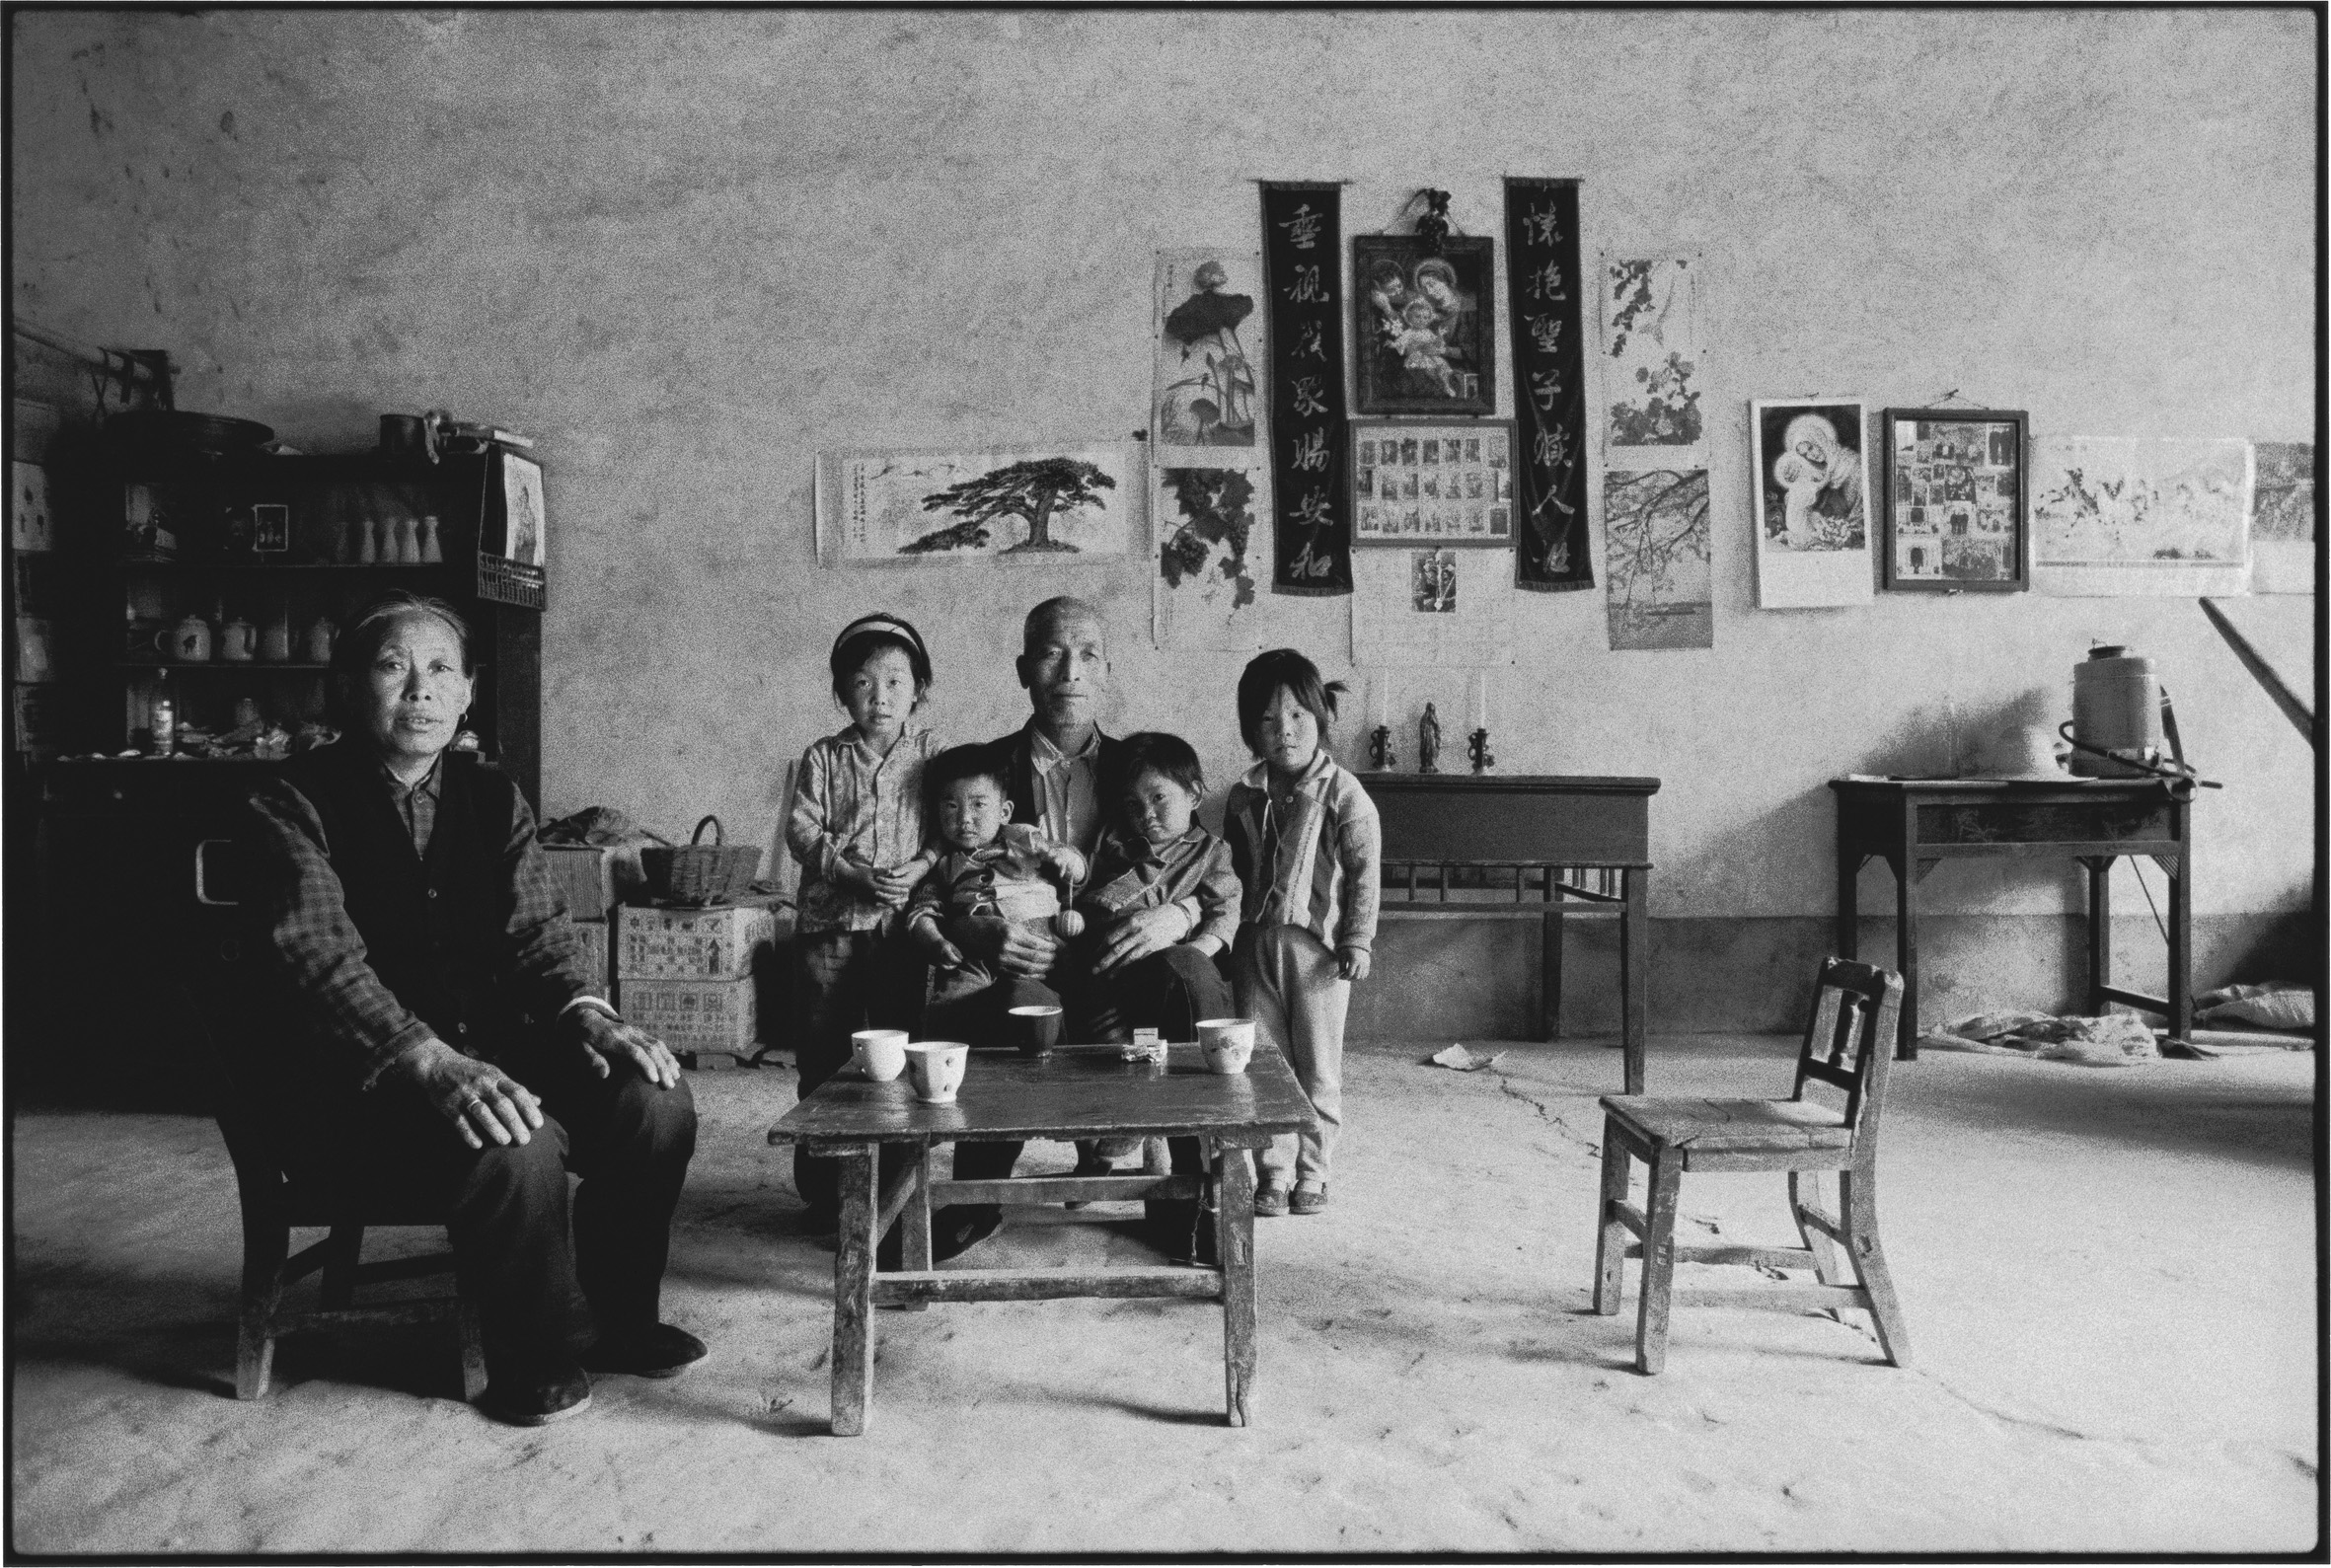 A Grandfather, Grandmother, and Their Grandchildren, Shaanxi, China